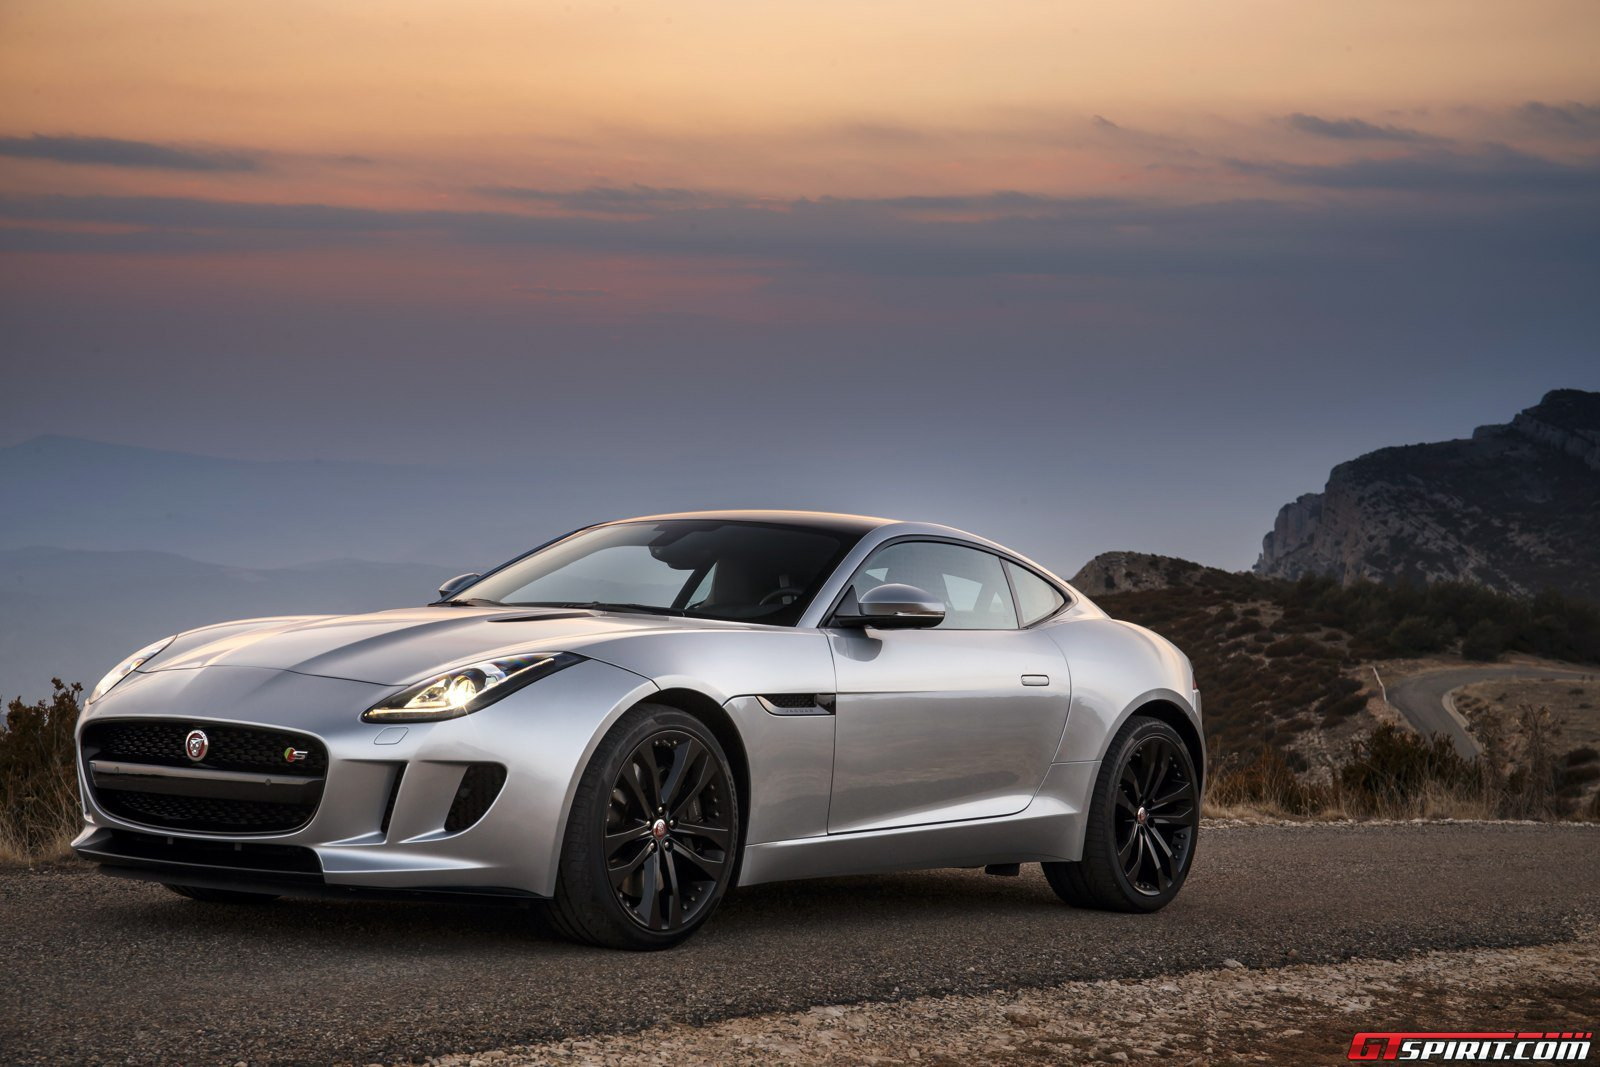 jaguar f type v6s coupe exterior25. Black Bedroom Furniture Sets. Home Design Ideas